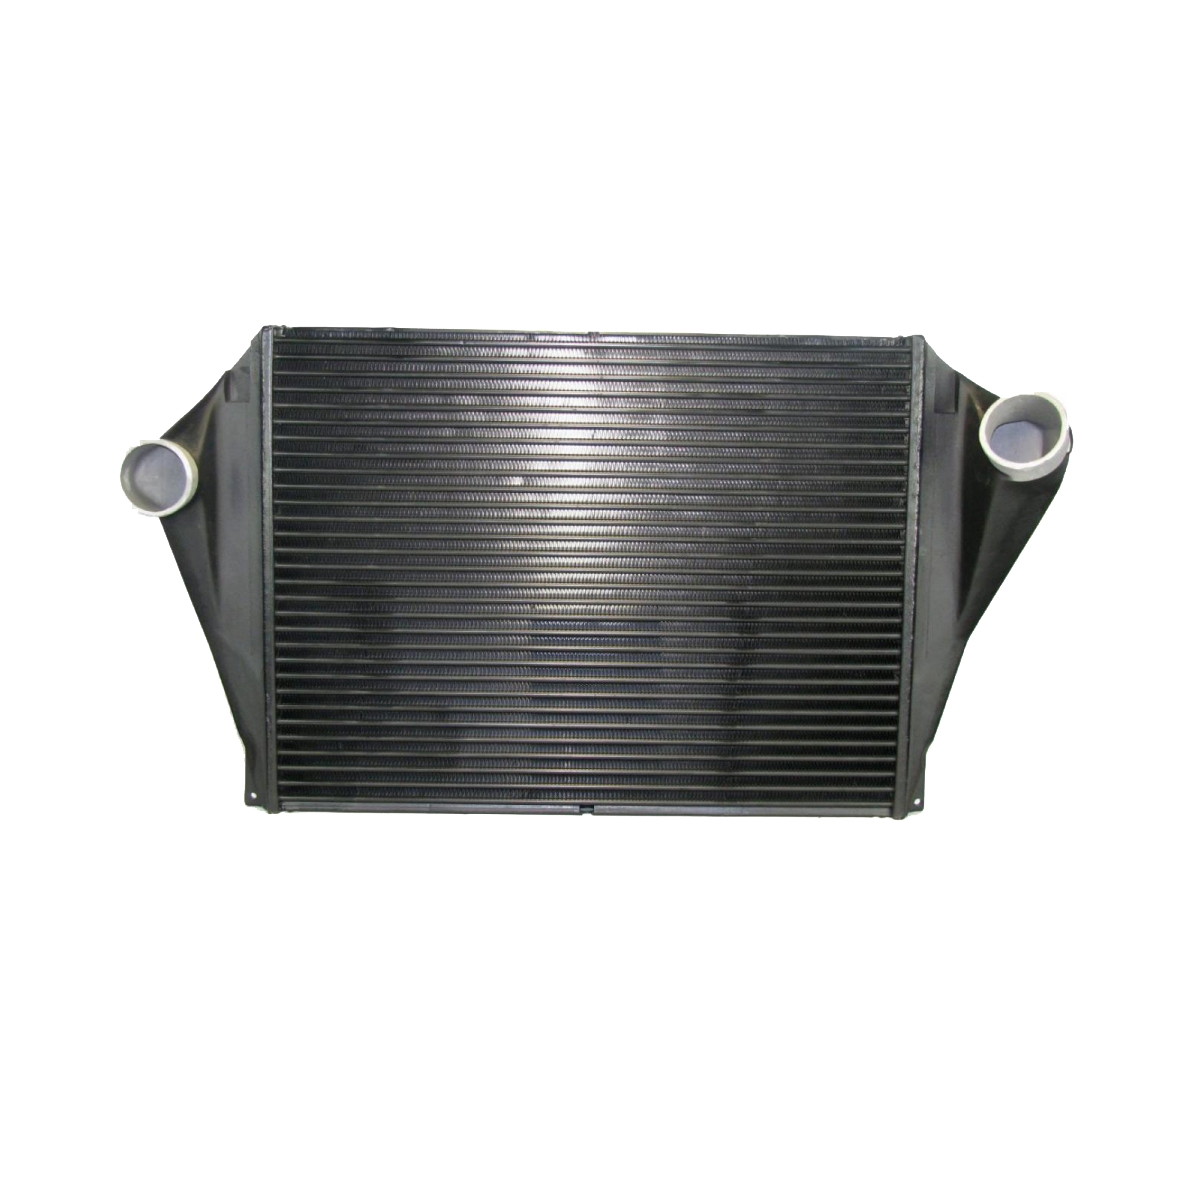 ford ford sterling 9000 9500 series 92 97 charge air cooler oem f4ht8009mb